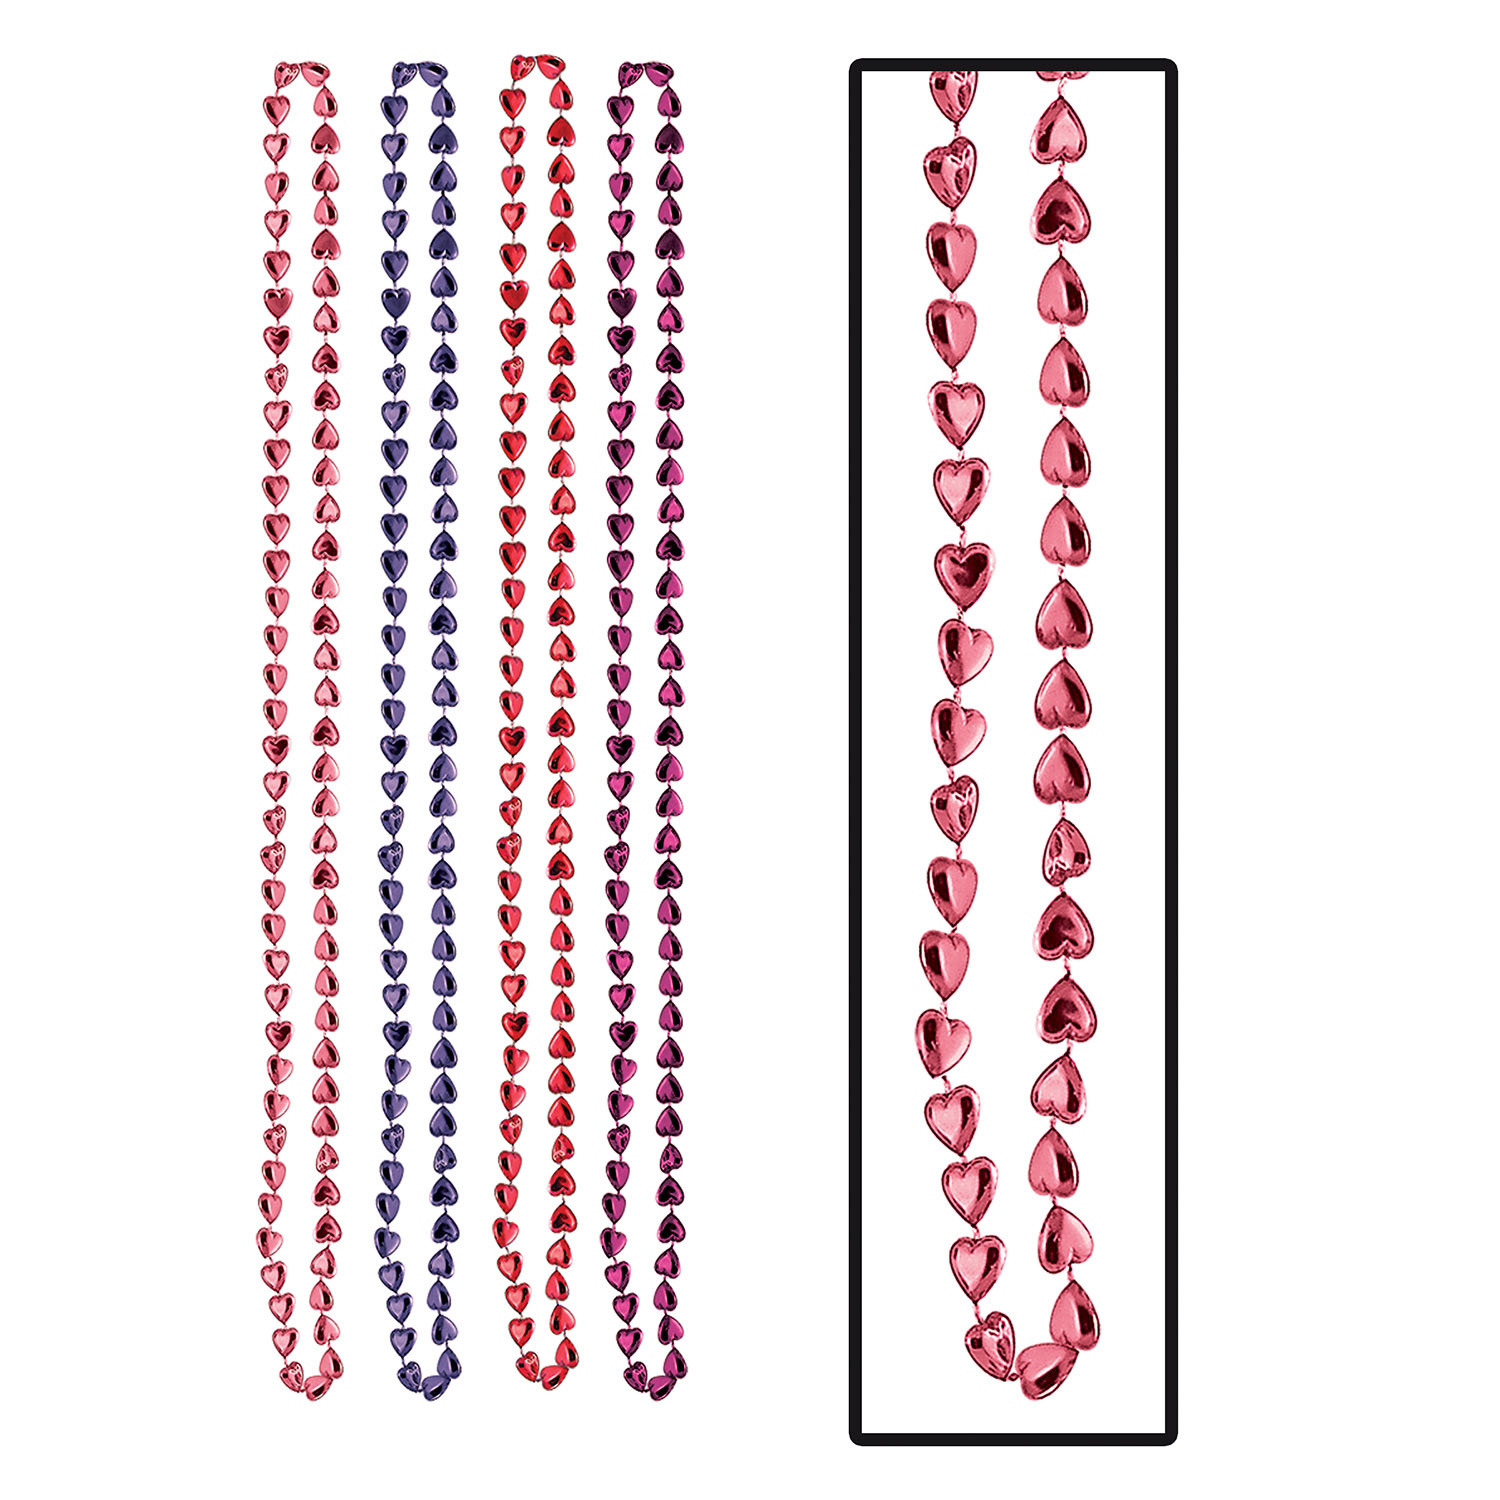 Candy Heart Beads (Pack of 48) .